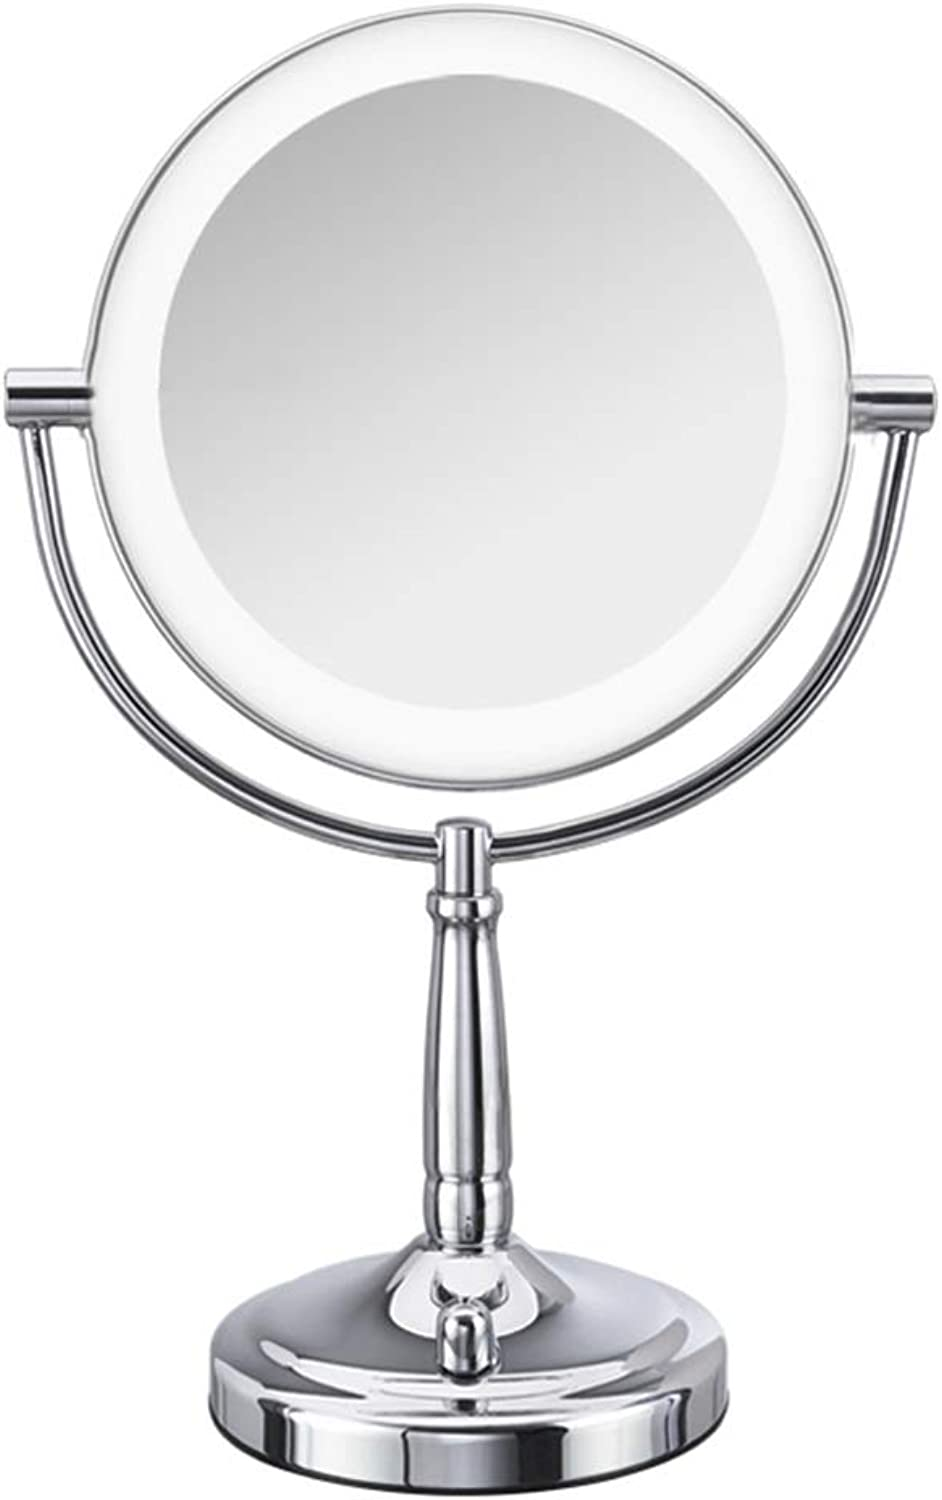 Makeup Mirror with Lights and Magnification Rechargeable, Double Sided HD Button 360 Degree Free redation for Bathroom (Size   8 inches)